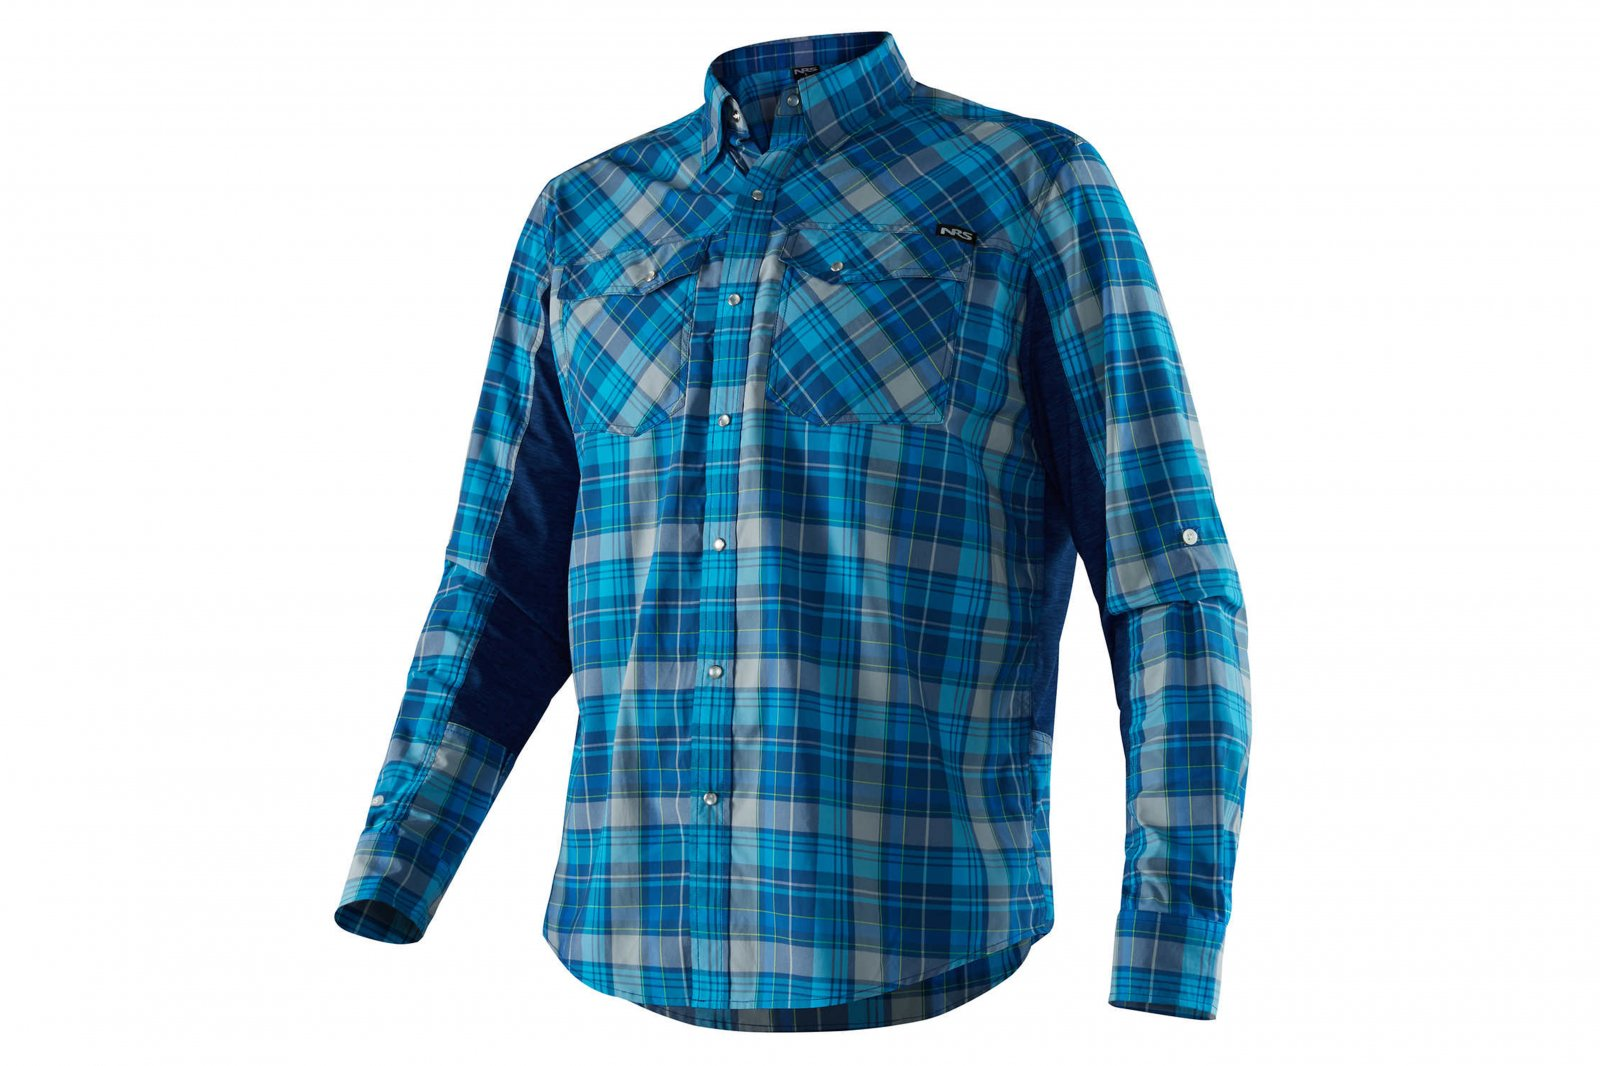 <img class='new_mark_img1' src='https://img.shop-pro.jp/img/new/icons5.gif' style='border:none;display:inline;margin:0px;padding:0px;width:auto;' />NRS Men's Guide Long-Sleeve Shirt